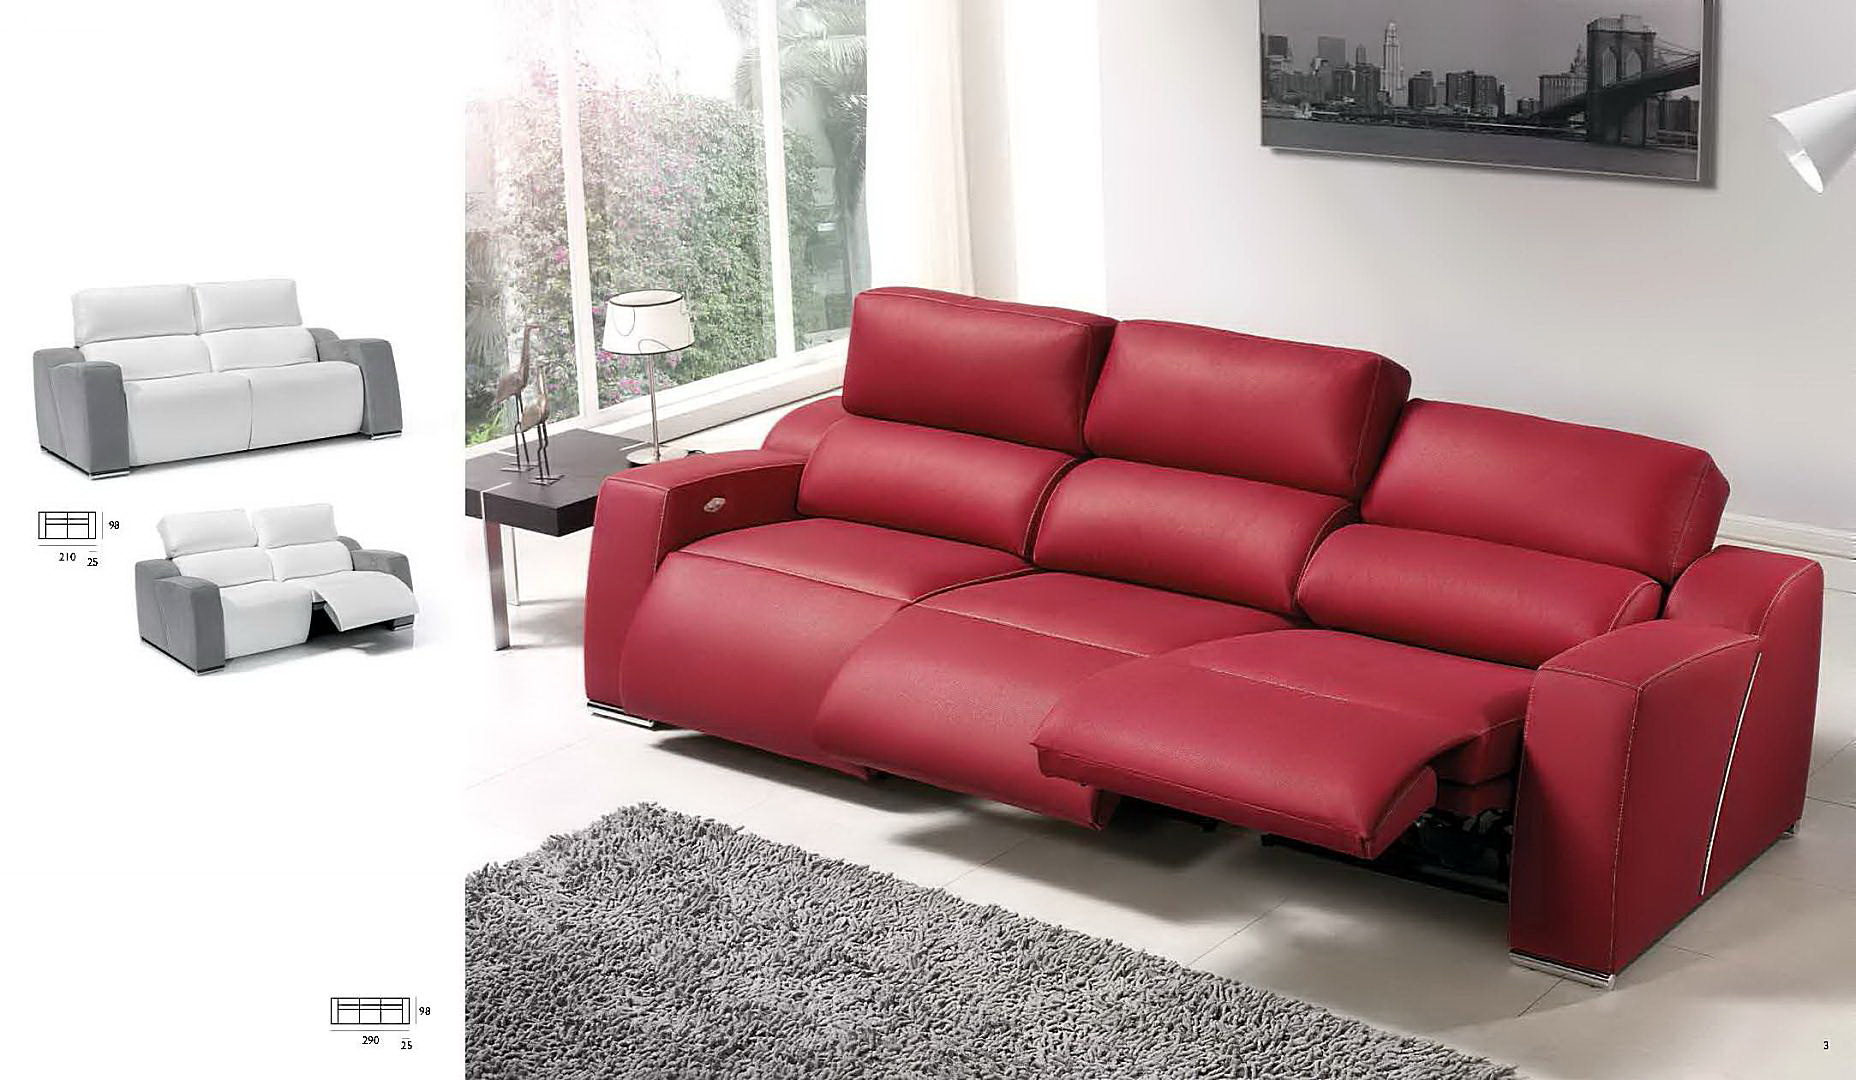 Oporto sof s modulares relax by verazzo design muebles for Sofas modulares baratos